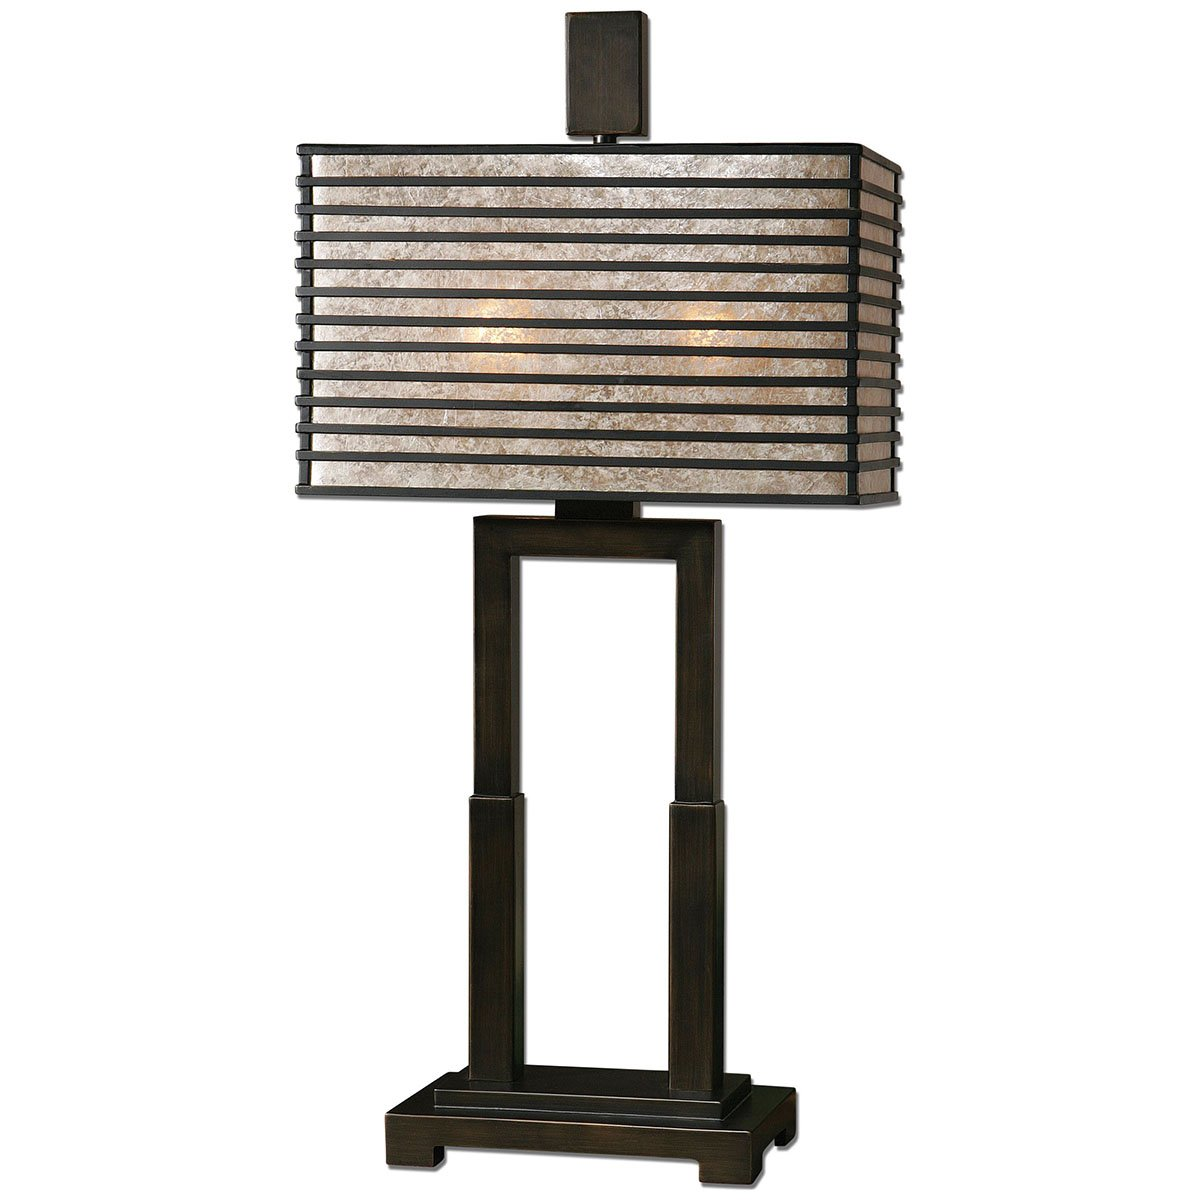 Amazon uttermost 26291 1 becton modern metal table lamp home amazon uttermost 26291 1 becton modern metal table lamp home kitchen geotapseo Gallery